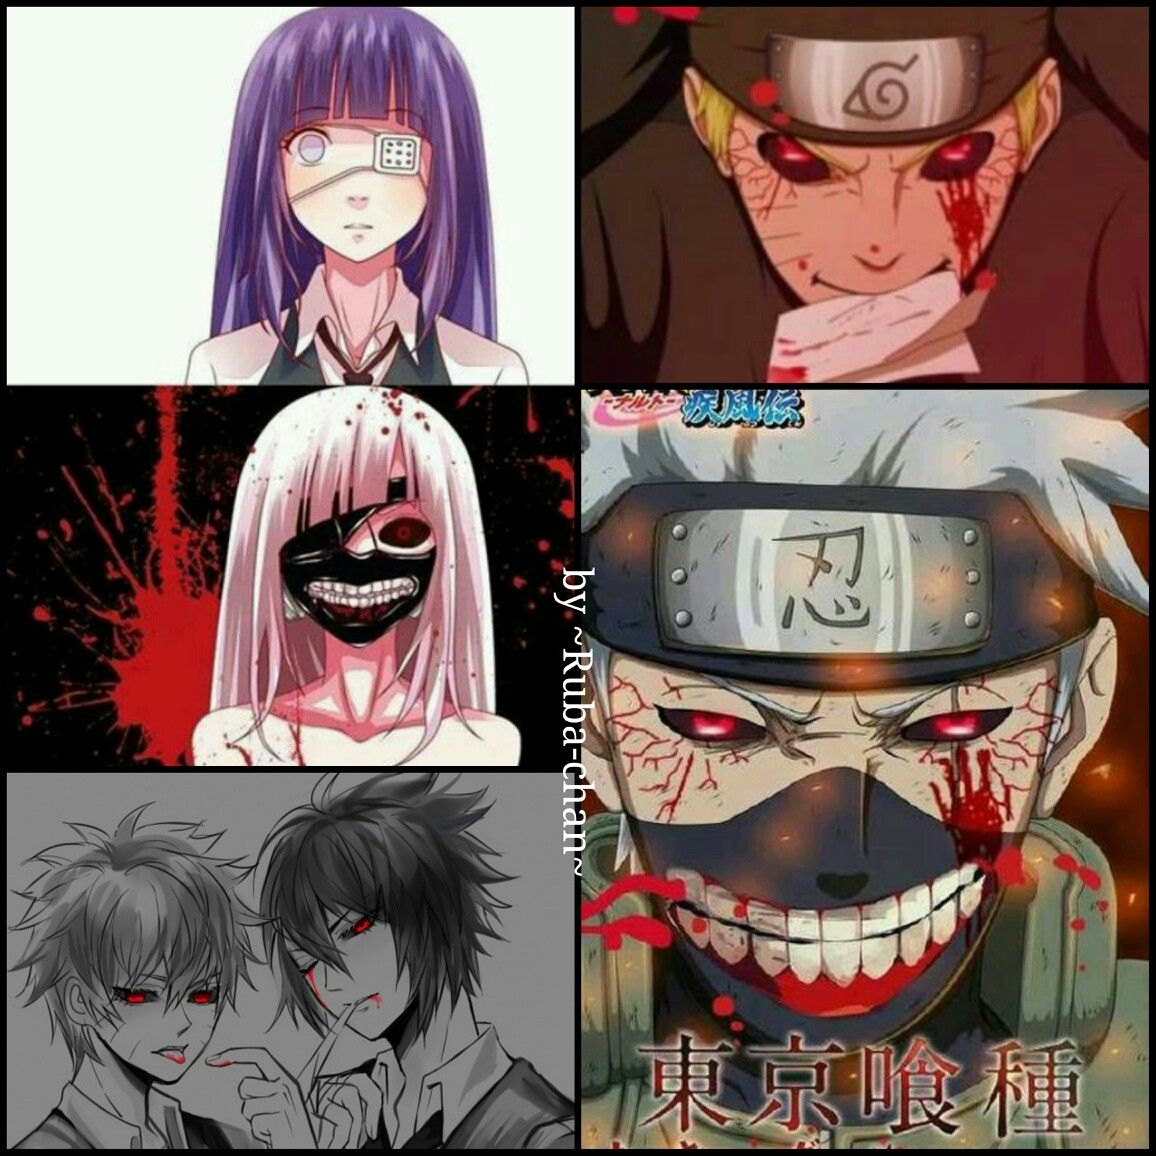 Naruto Tokyo Ghoul crossover Tokyo ghoul crossover